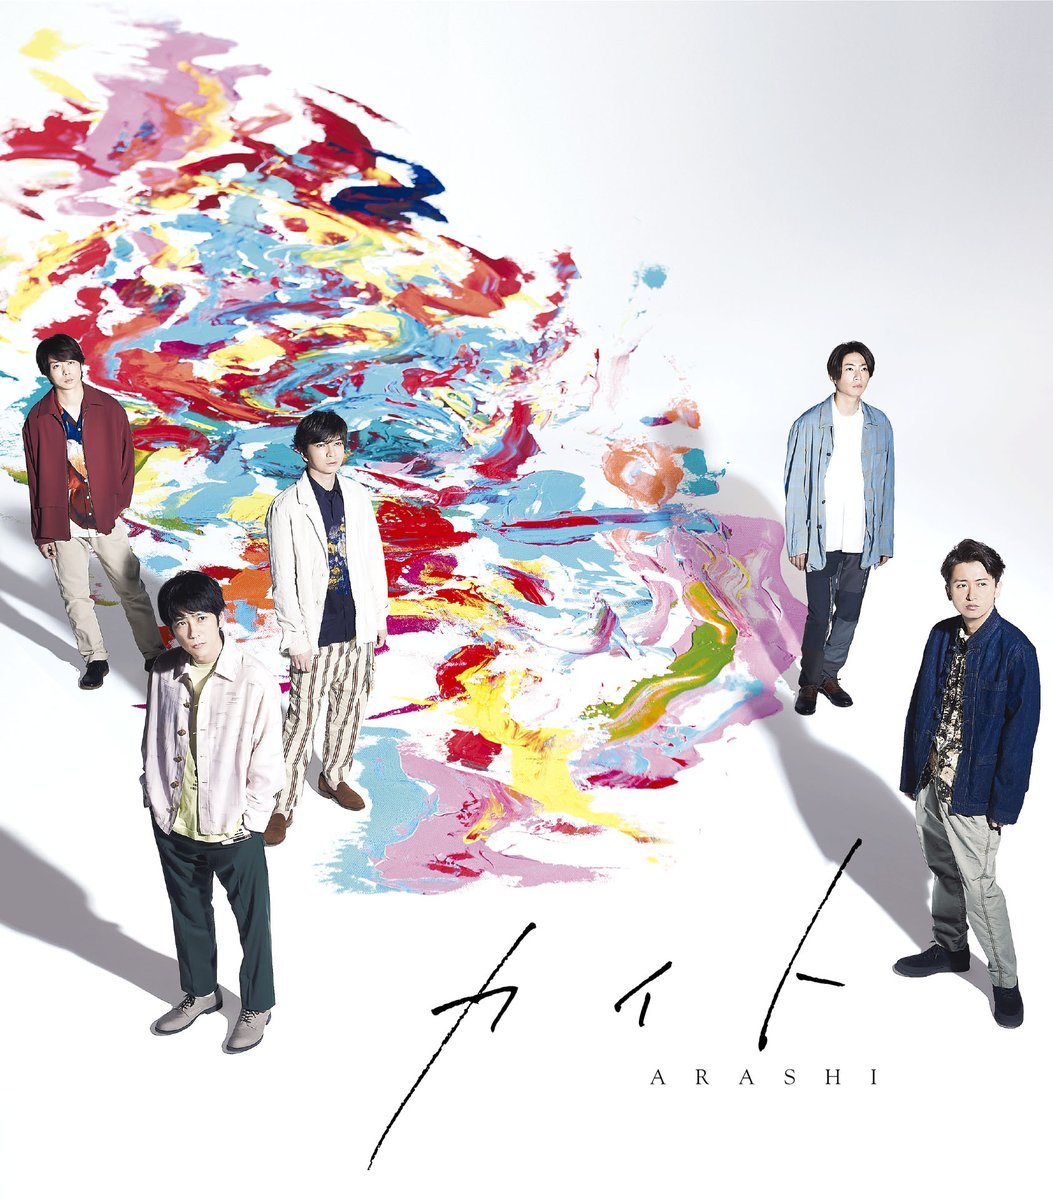 嵐 - Journey to Harmony Lyrics